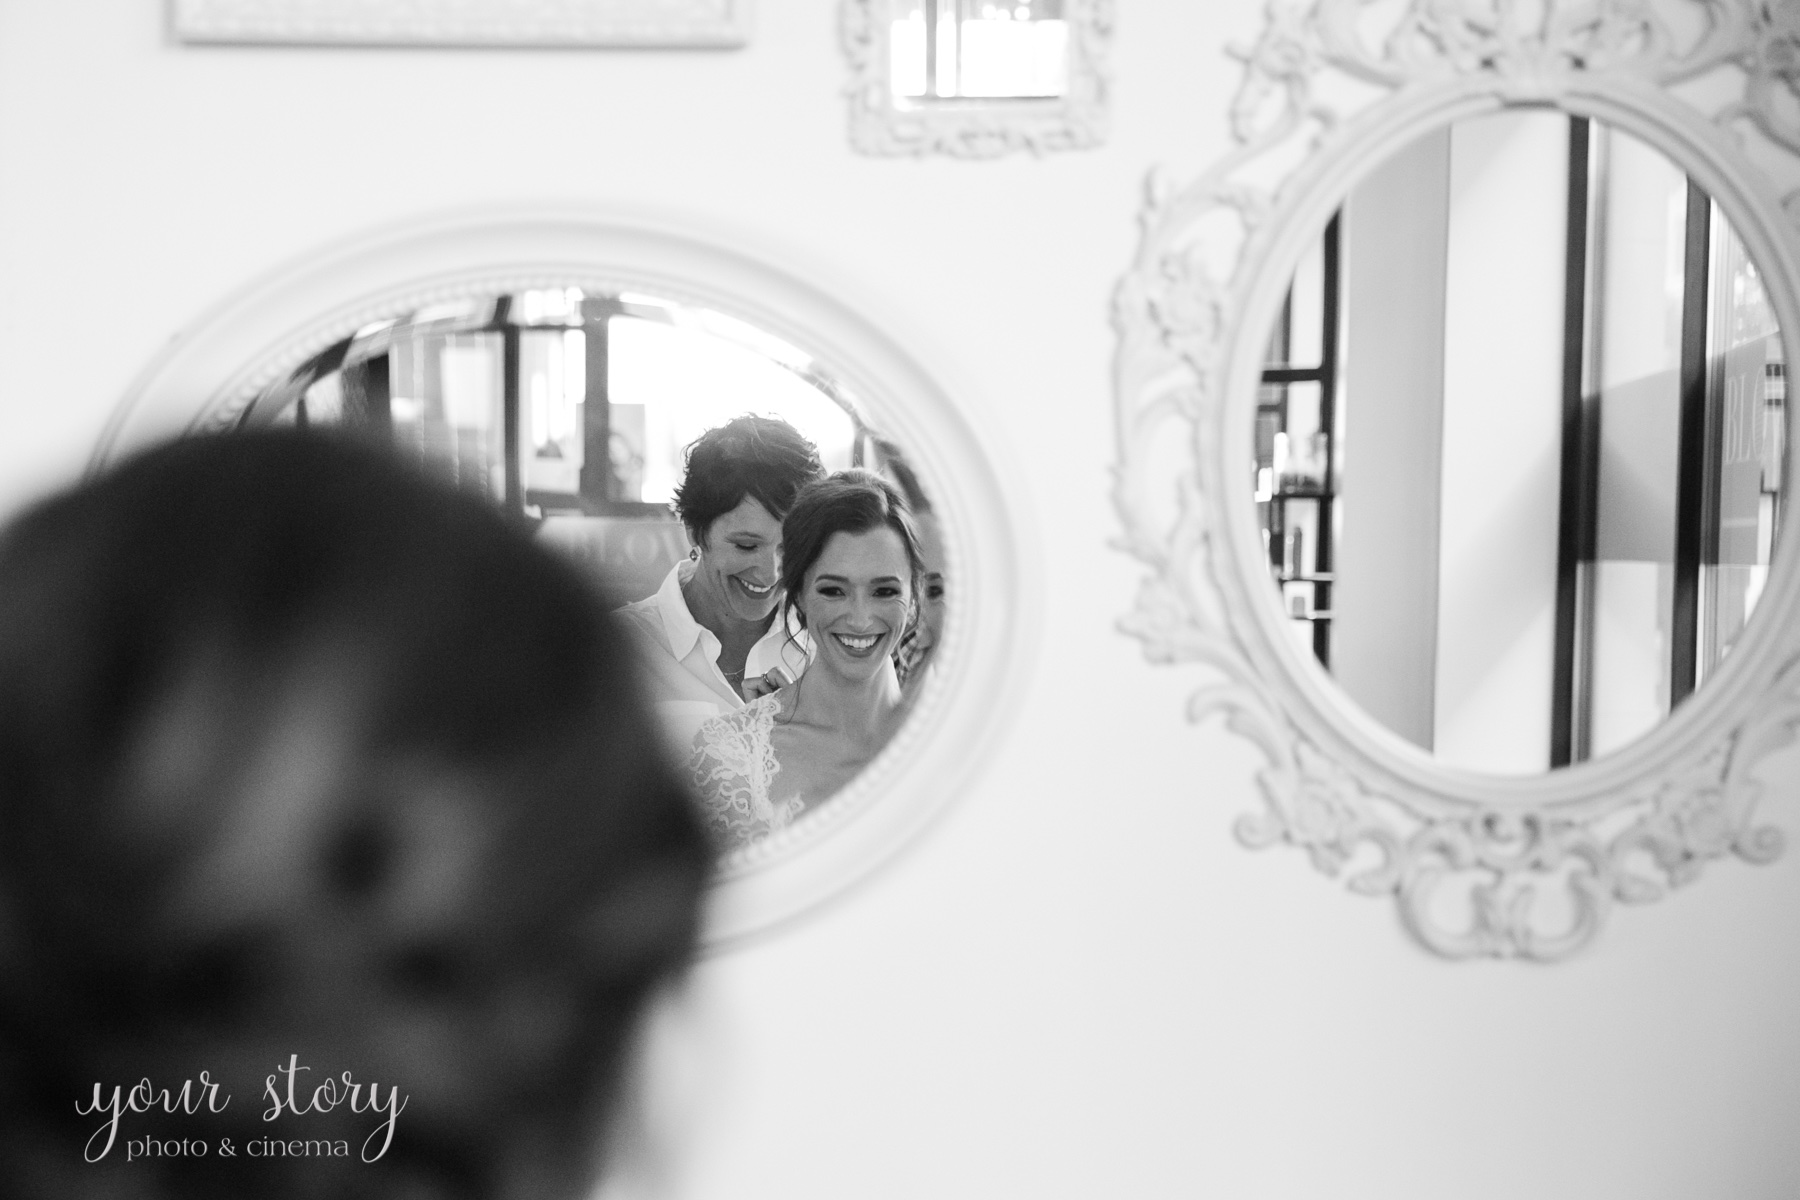 Lilly + Tim- Old Cathedral and Family Home - Your Story Photo + Cinema